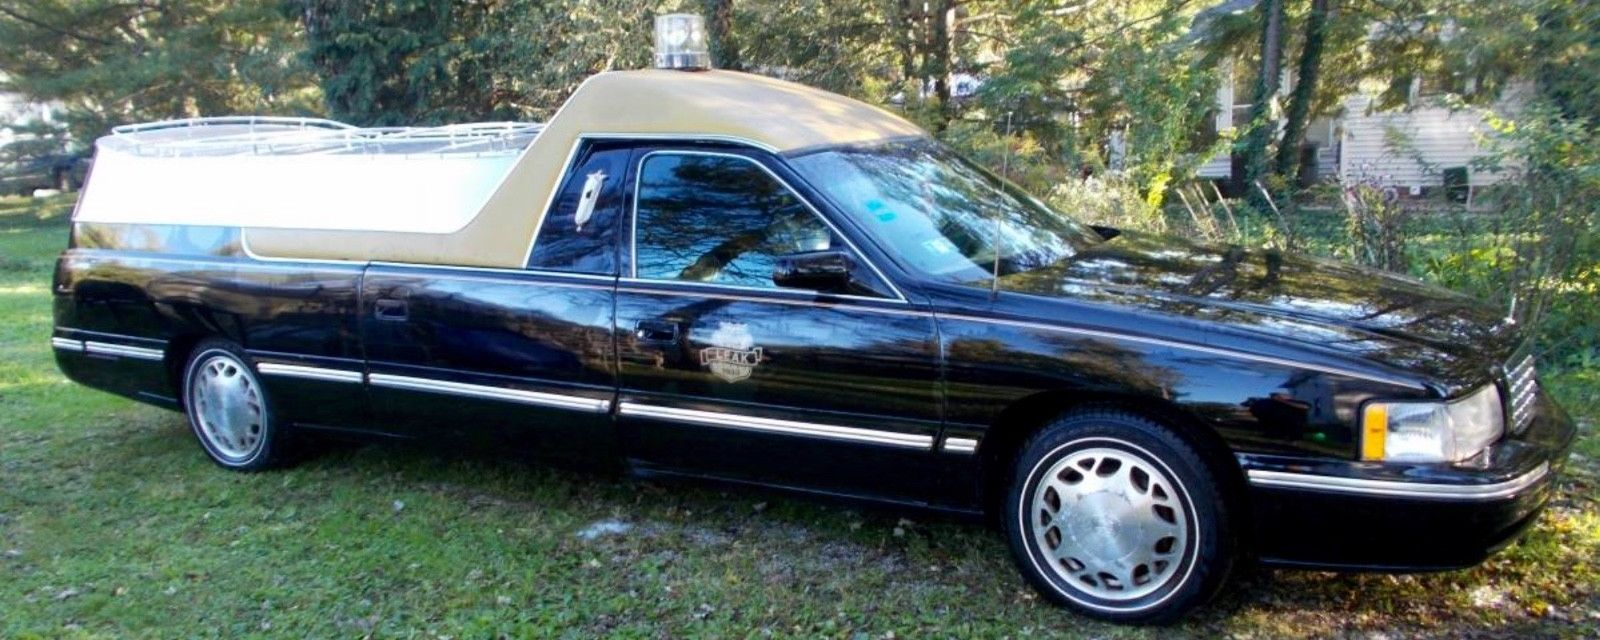 1972 mercedes benz 250 funeral coach hearse w115 hearses for sale pinterest mercedes benz and cars